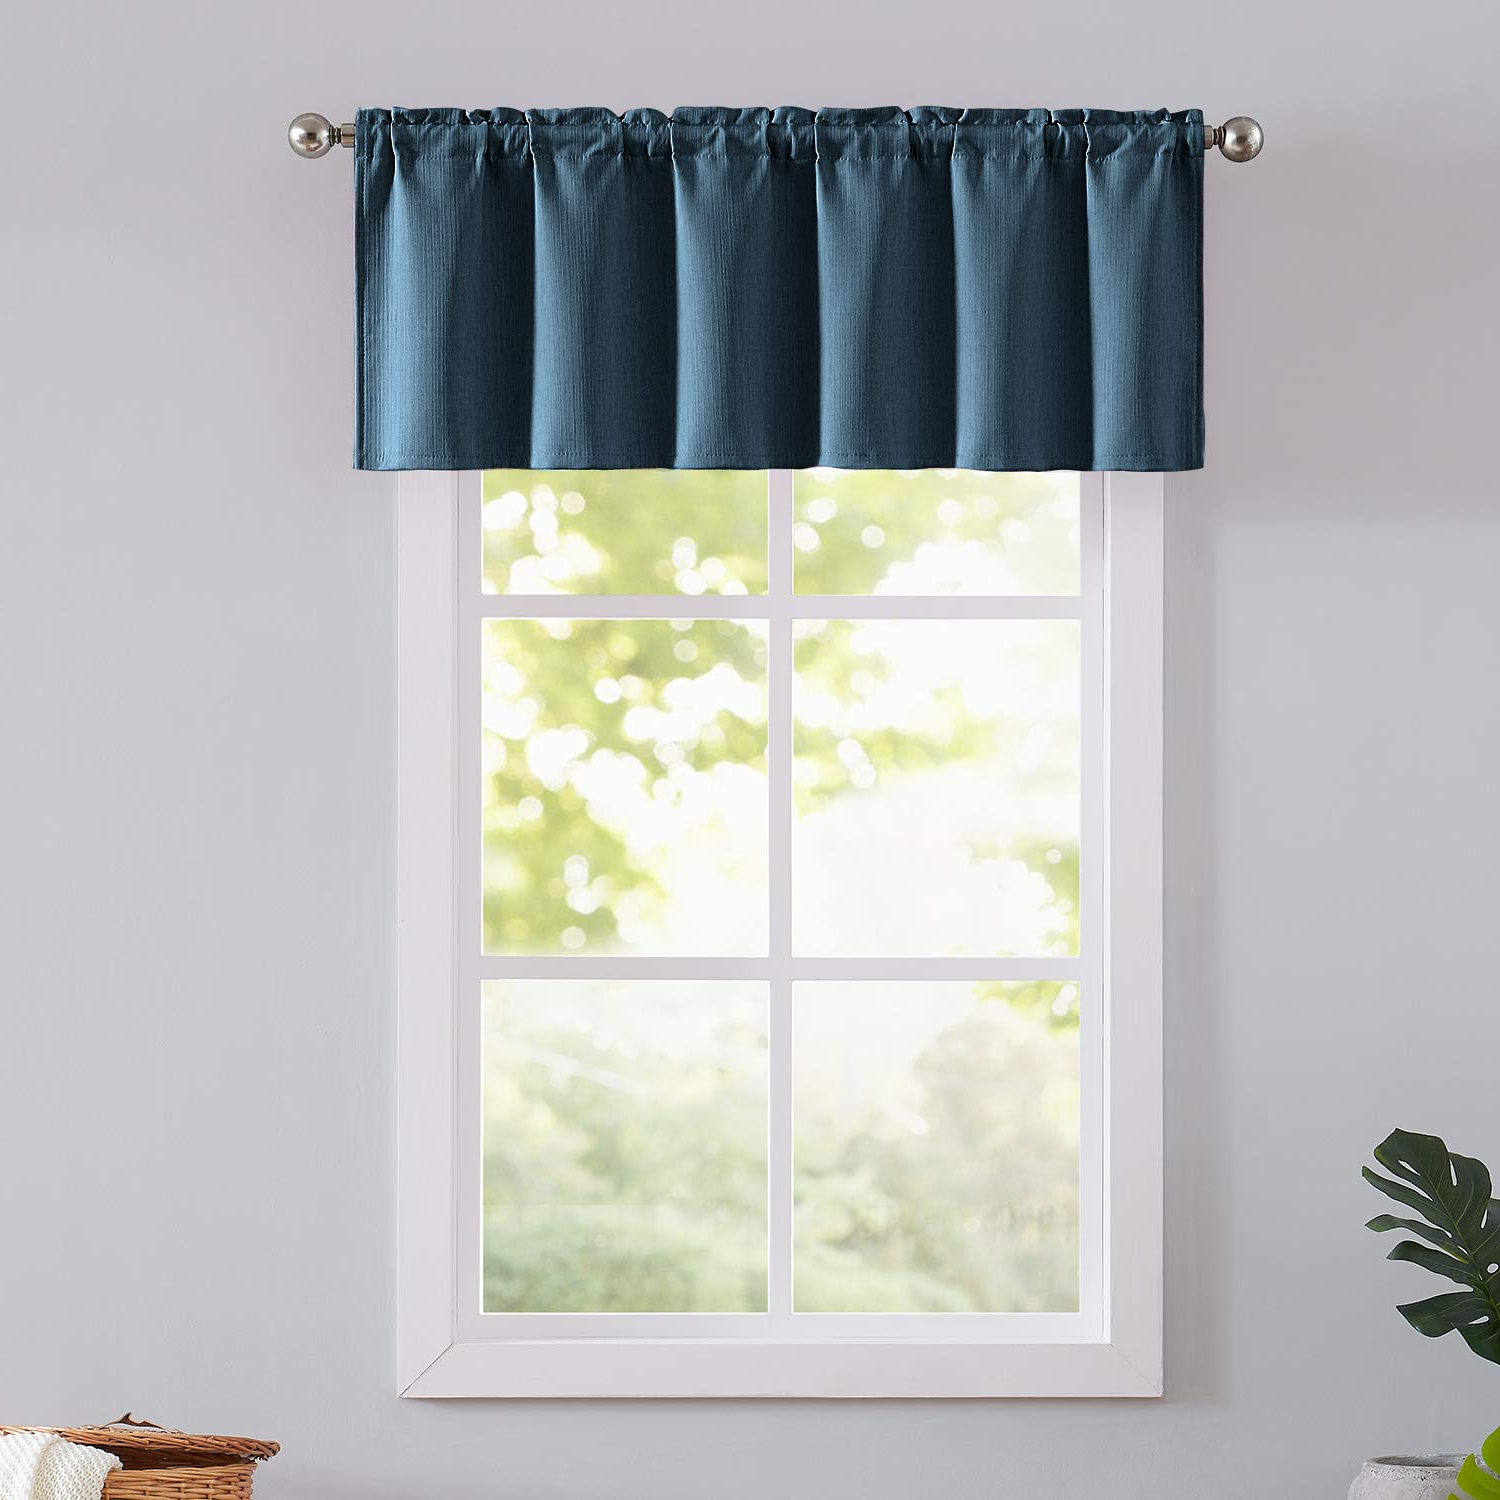 "Natwin Blue Valance Window Curtain For Bedroom 18"" Blue Valance For Kitchen Window Rod Pocket 52"" Width 1 Panel Pertaining To Most Recent Modern Subtle Texture Solid White Kitchen Curtain Parts With Grommets Tier And Valance Options (View 16 of 20)"